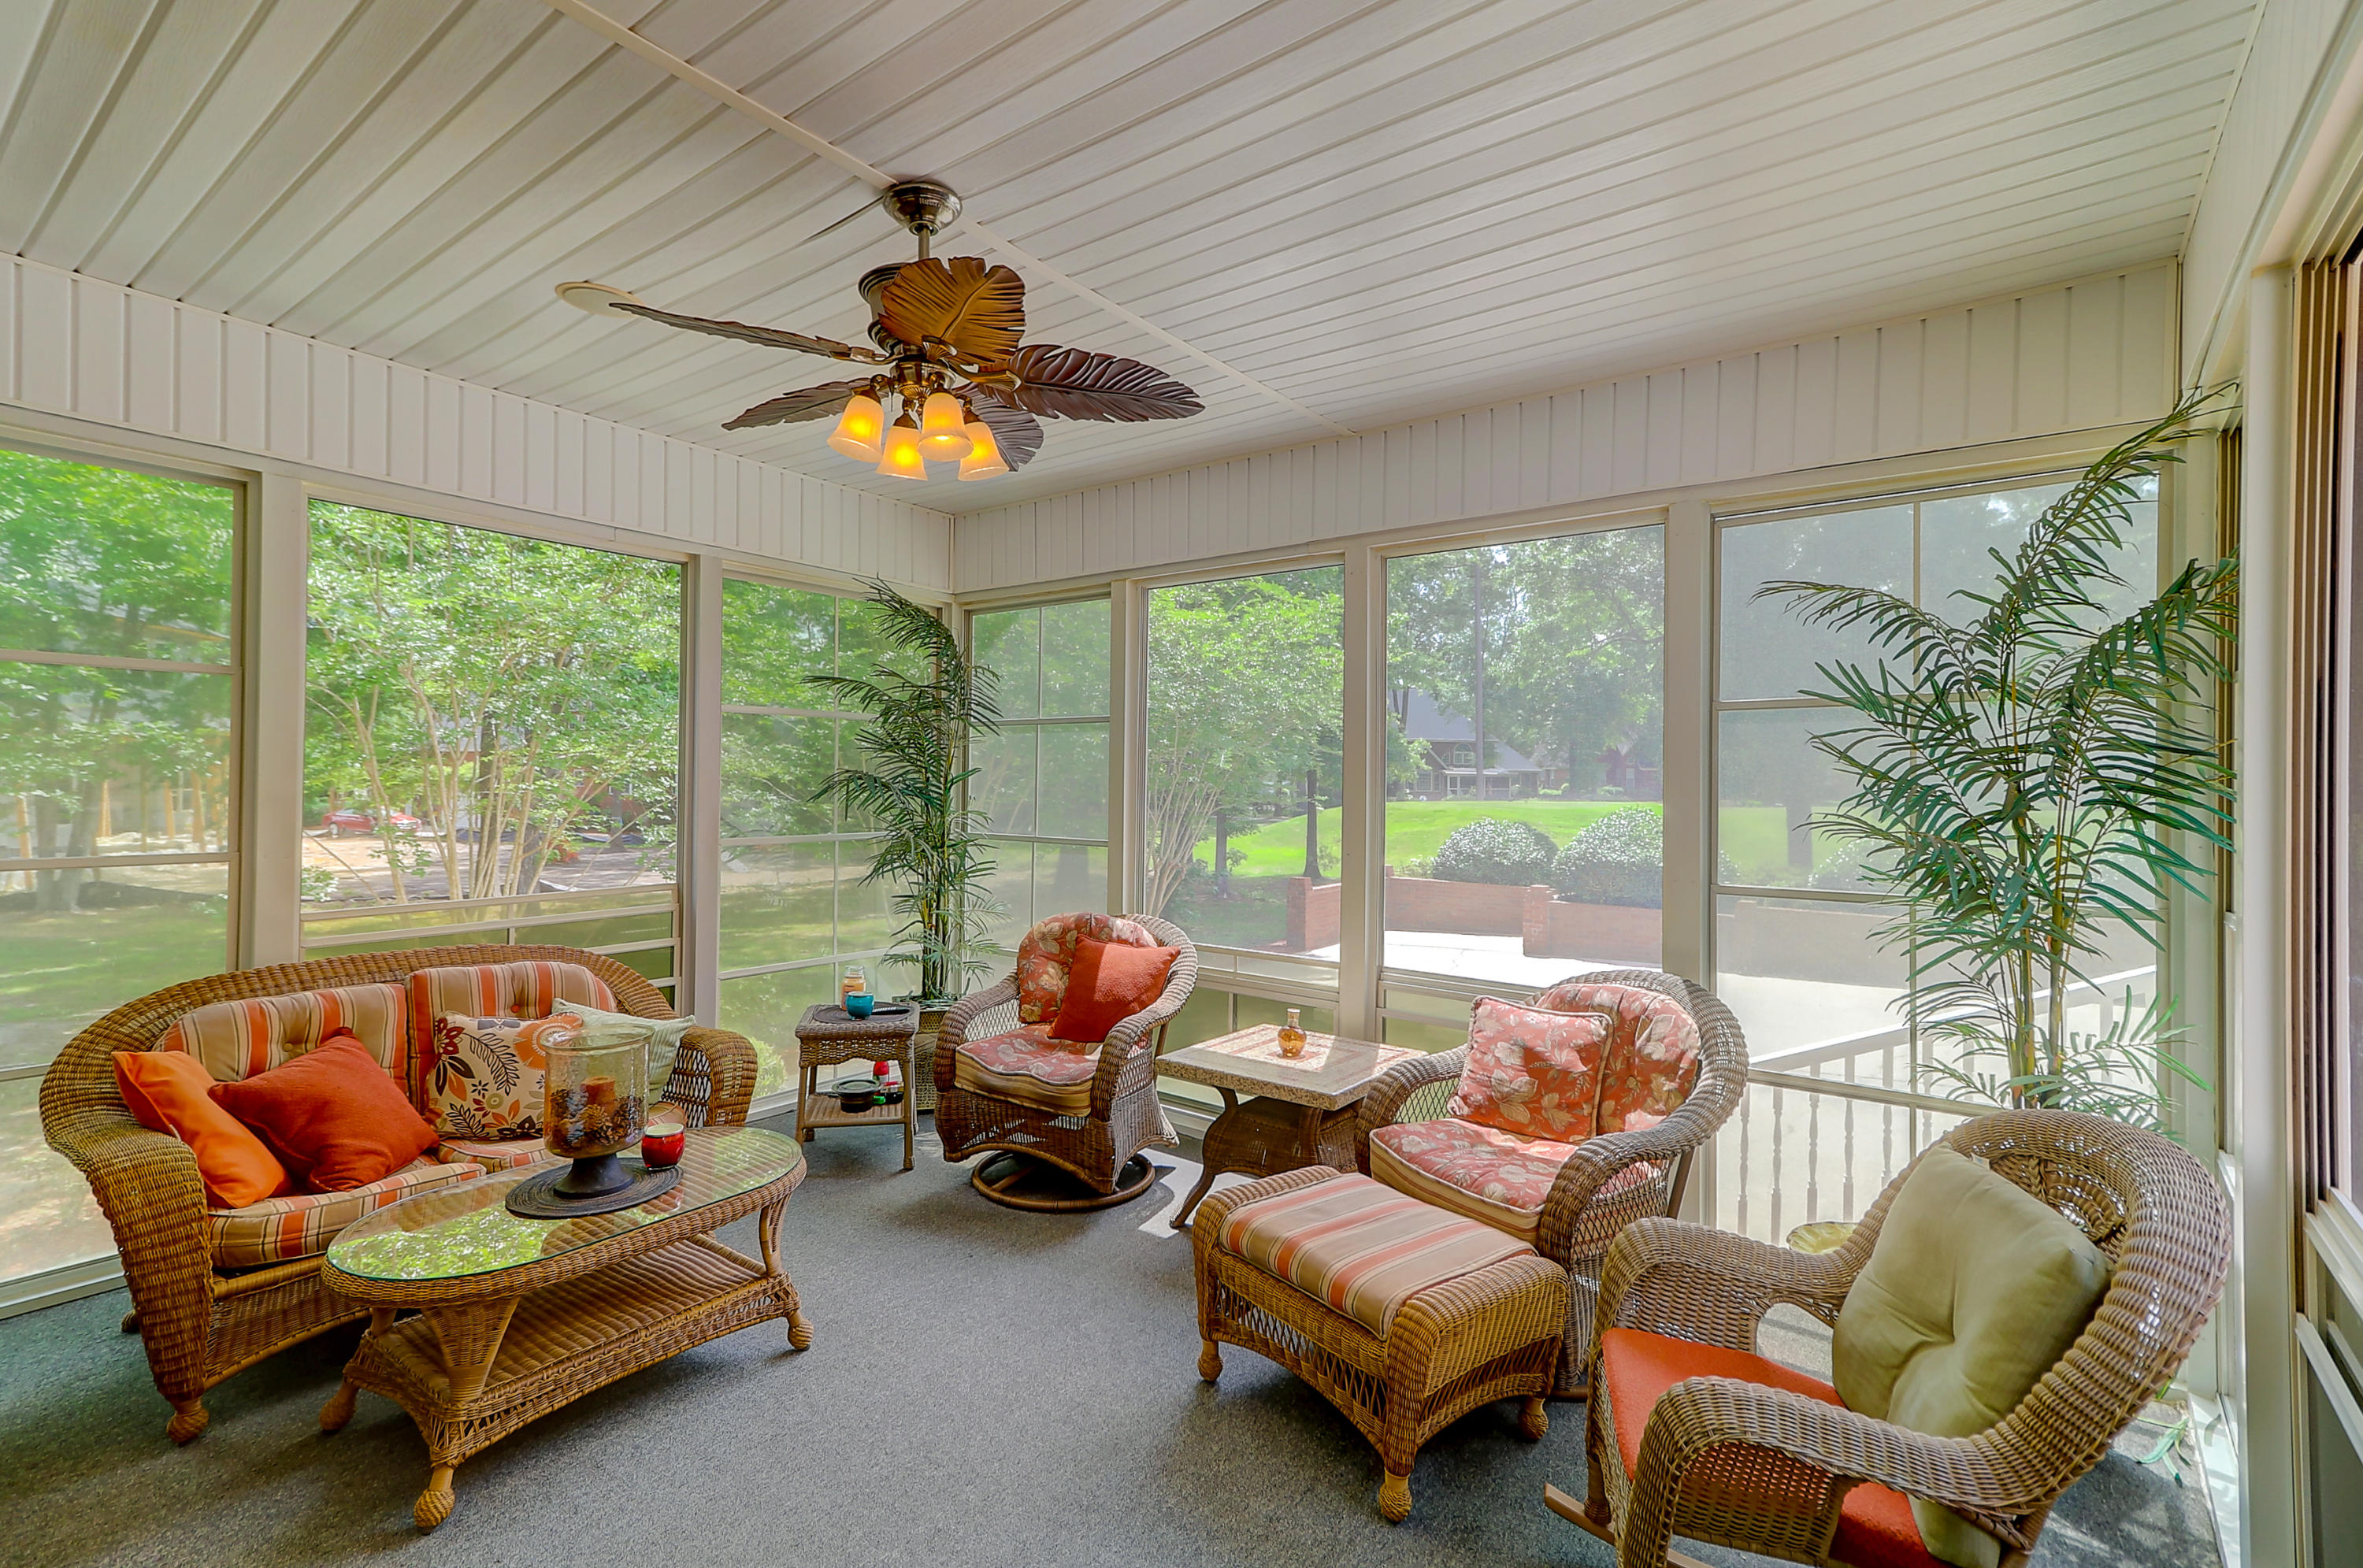 Coosaw Creek Country Club Homes For Sale - 8700 Fairway Woods, North Charleston, SC - 32